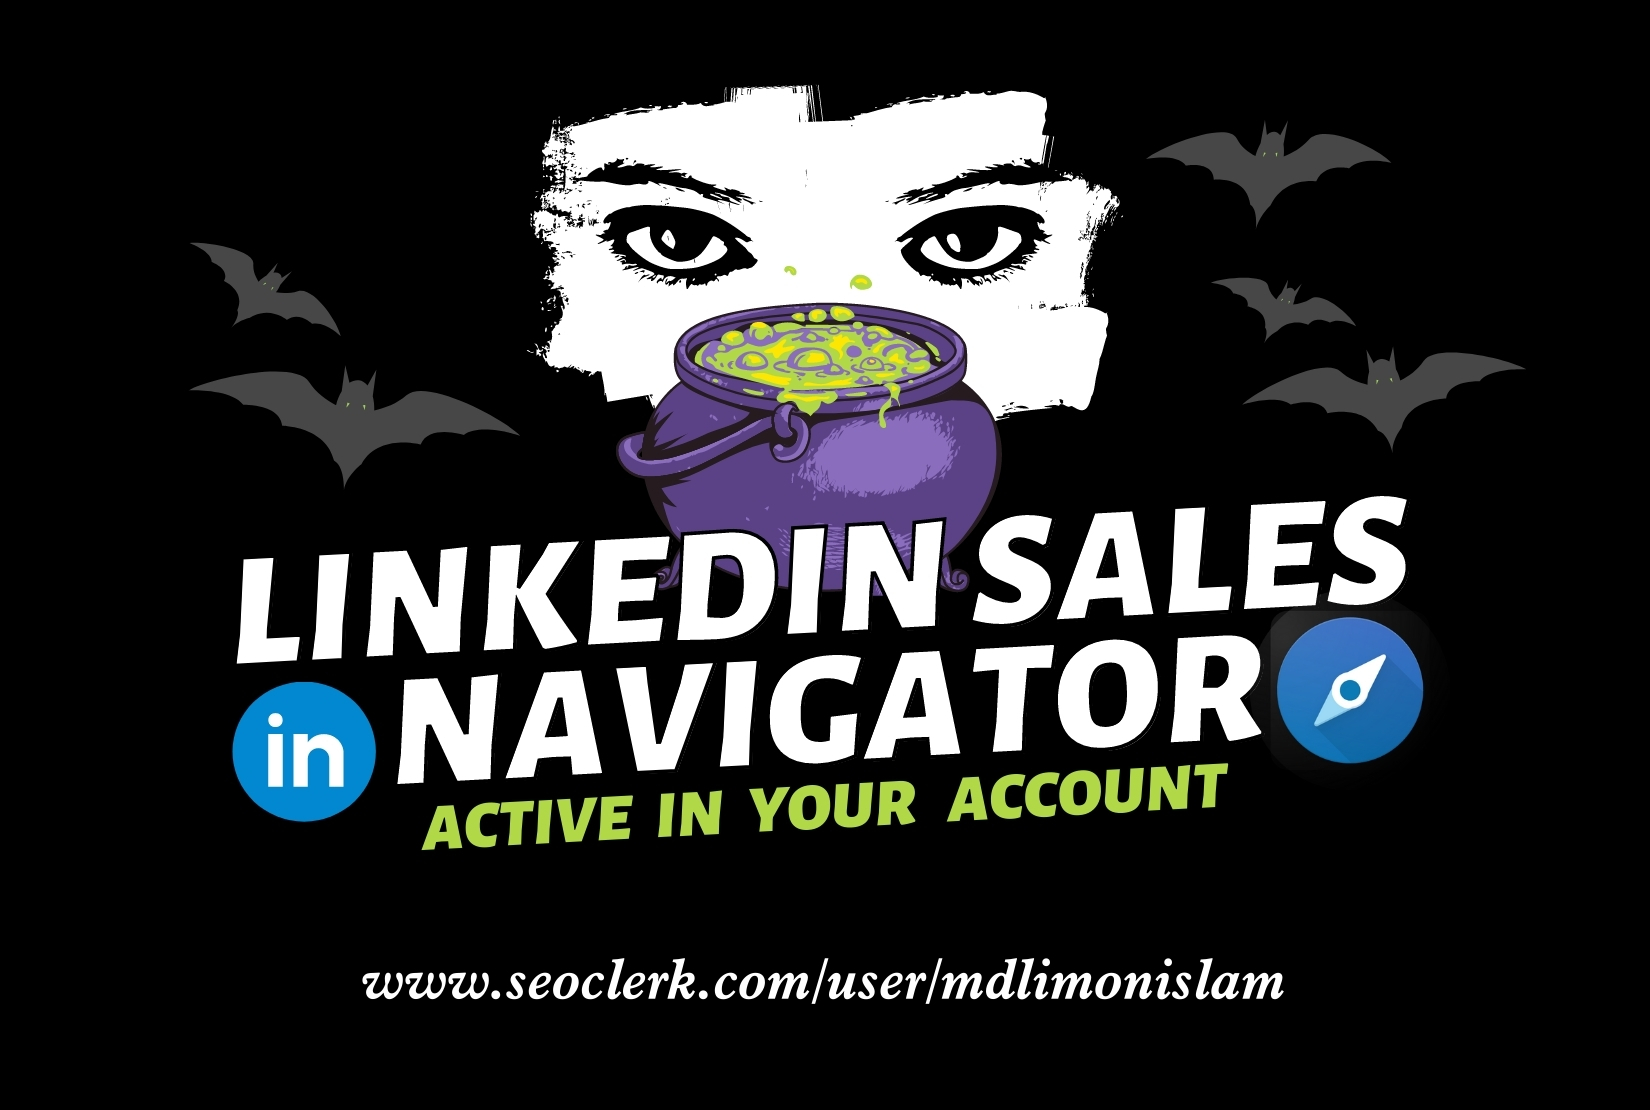 I will upgrade or active your LinkedIn sales navigator premium account for lead generation